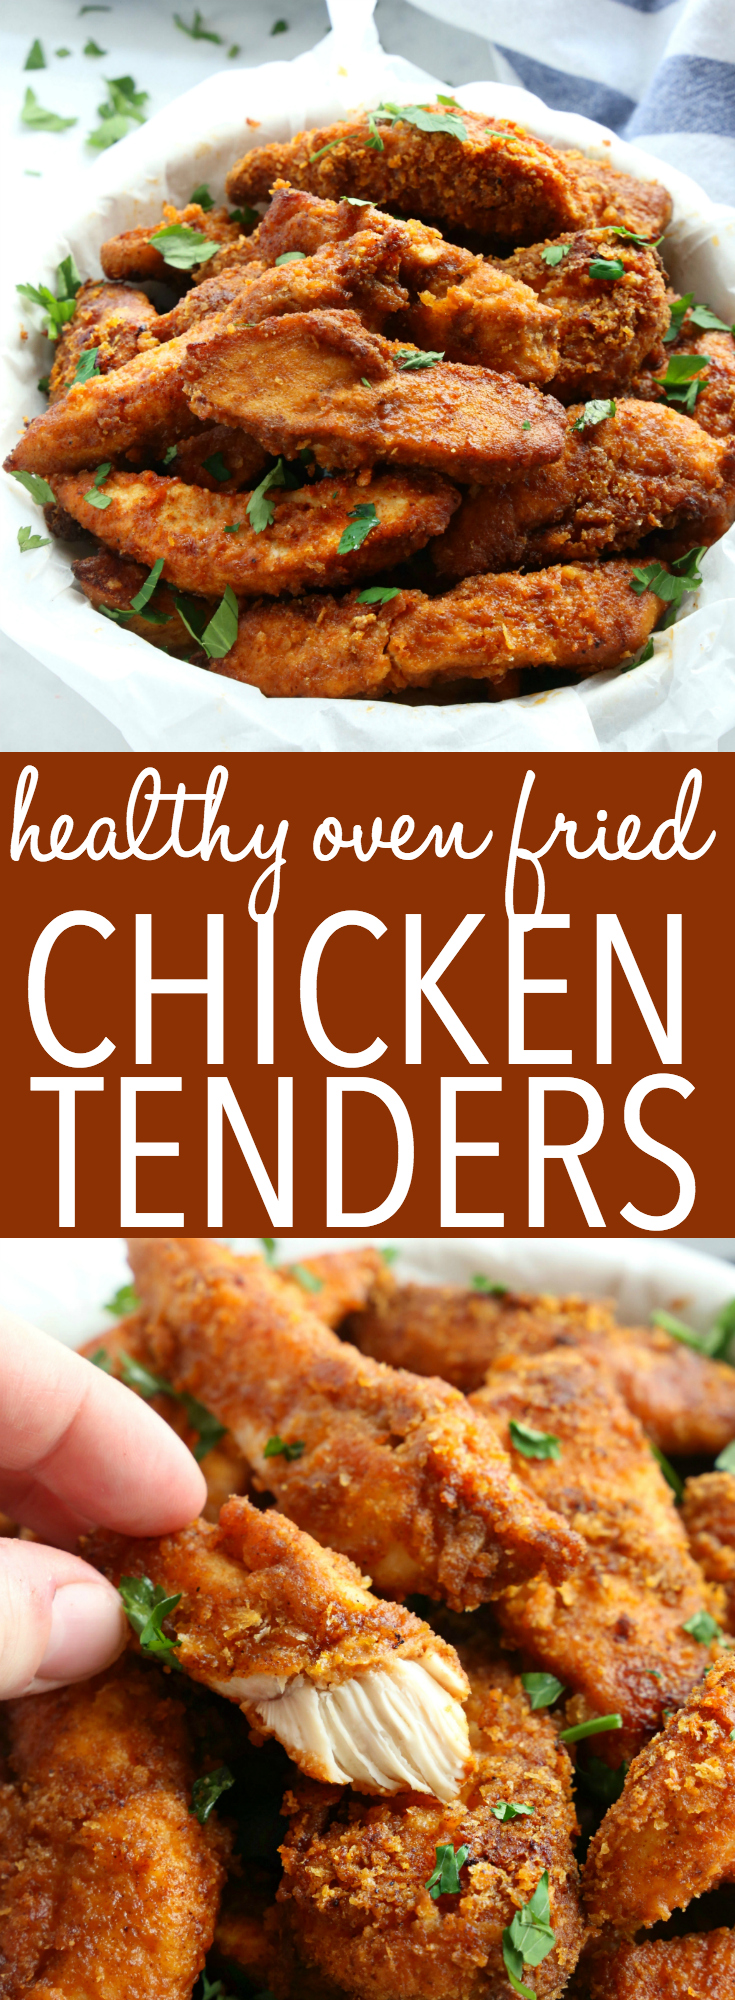 These Healthier Oven Fried Chicken Tenders are the perfect way to enjoy that fried chicken taste without all the fat! They're baked to perfection with a crispy crust and the perfect blend of herbs and spices!Recipe from thebusybaker.ca! #ovenbakedchickentenders #healthychickentenders #healthychickenfingers #ovenfriedchicken via @busybakerblog